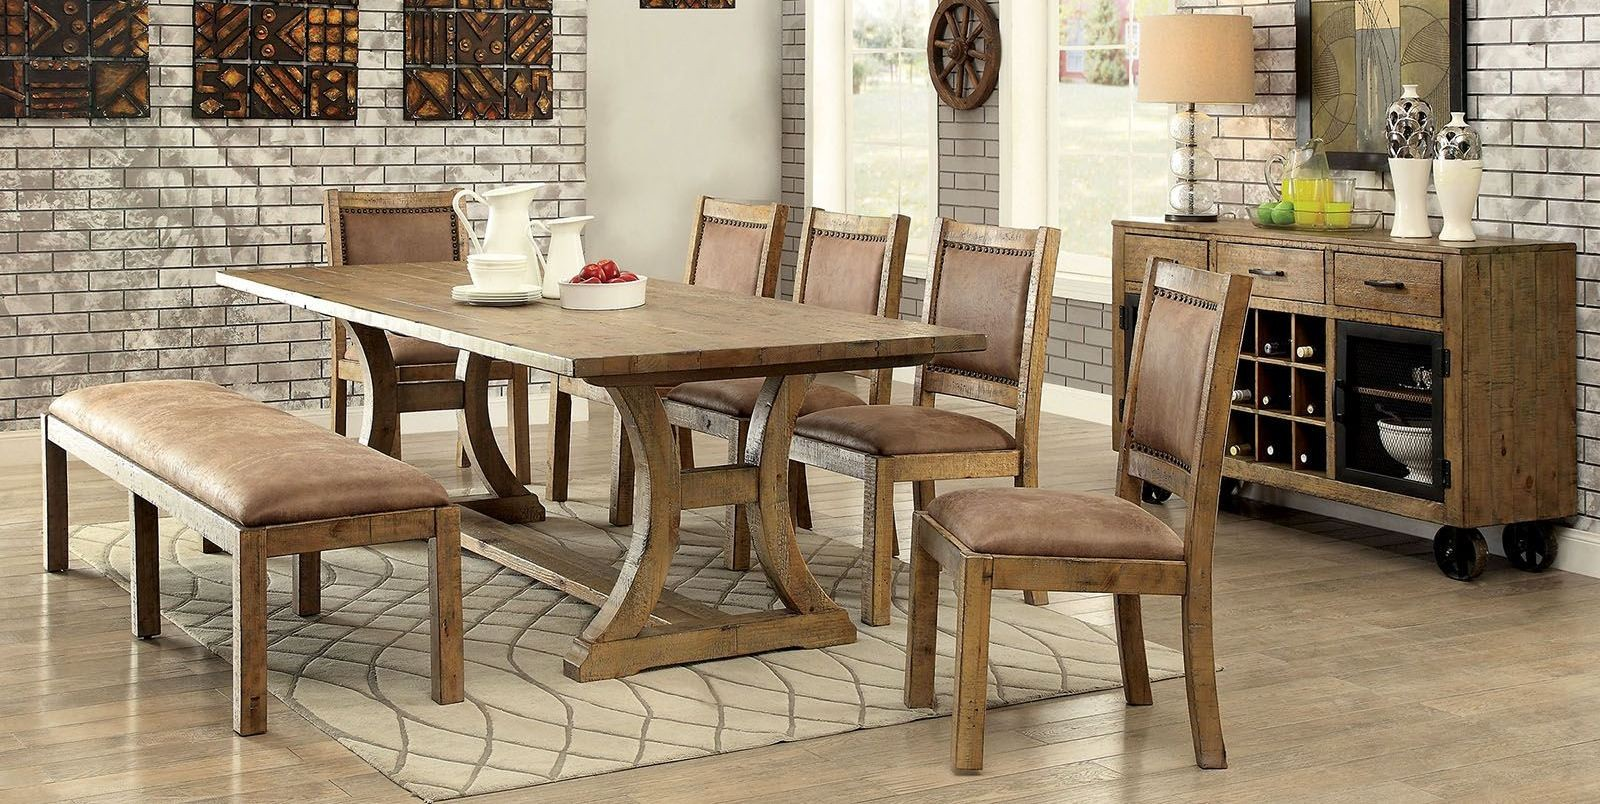 Dining Room Furniture Rustic Gianna Rustic Pine Extendable Rectangular Dining Room Set